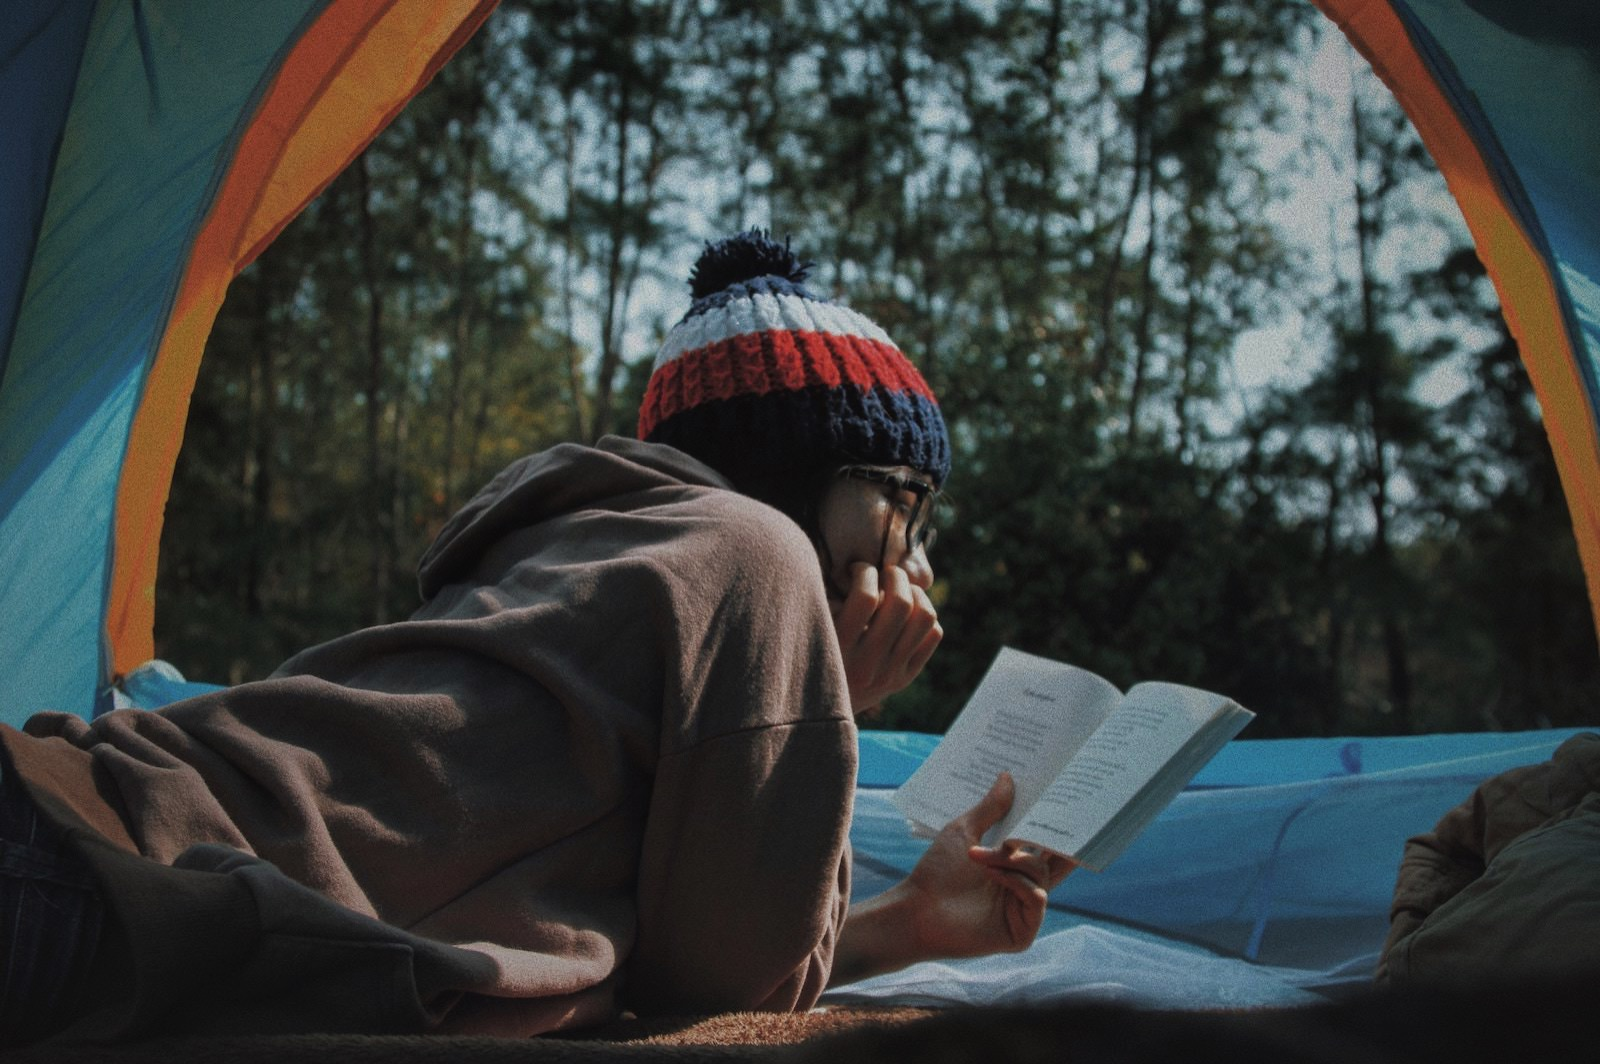 Le tan 640851 unsplash woman reading a book in tent